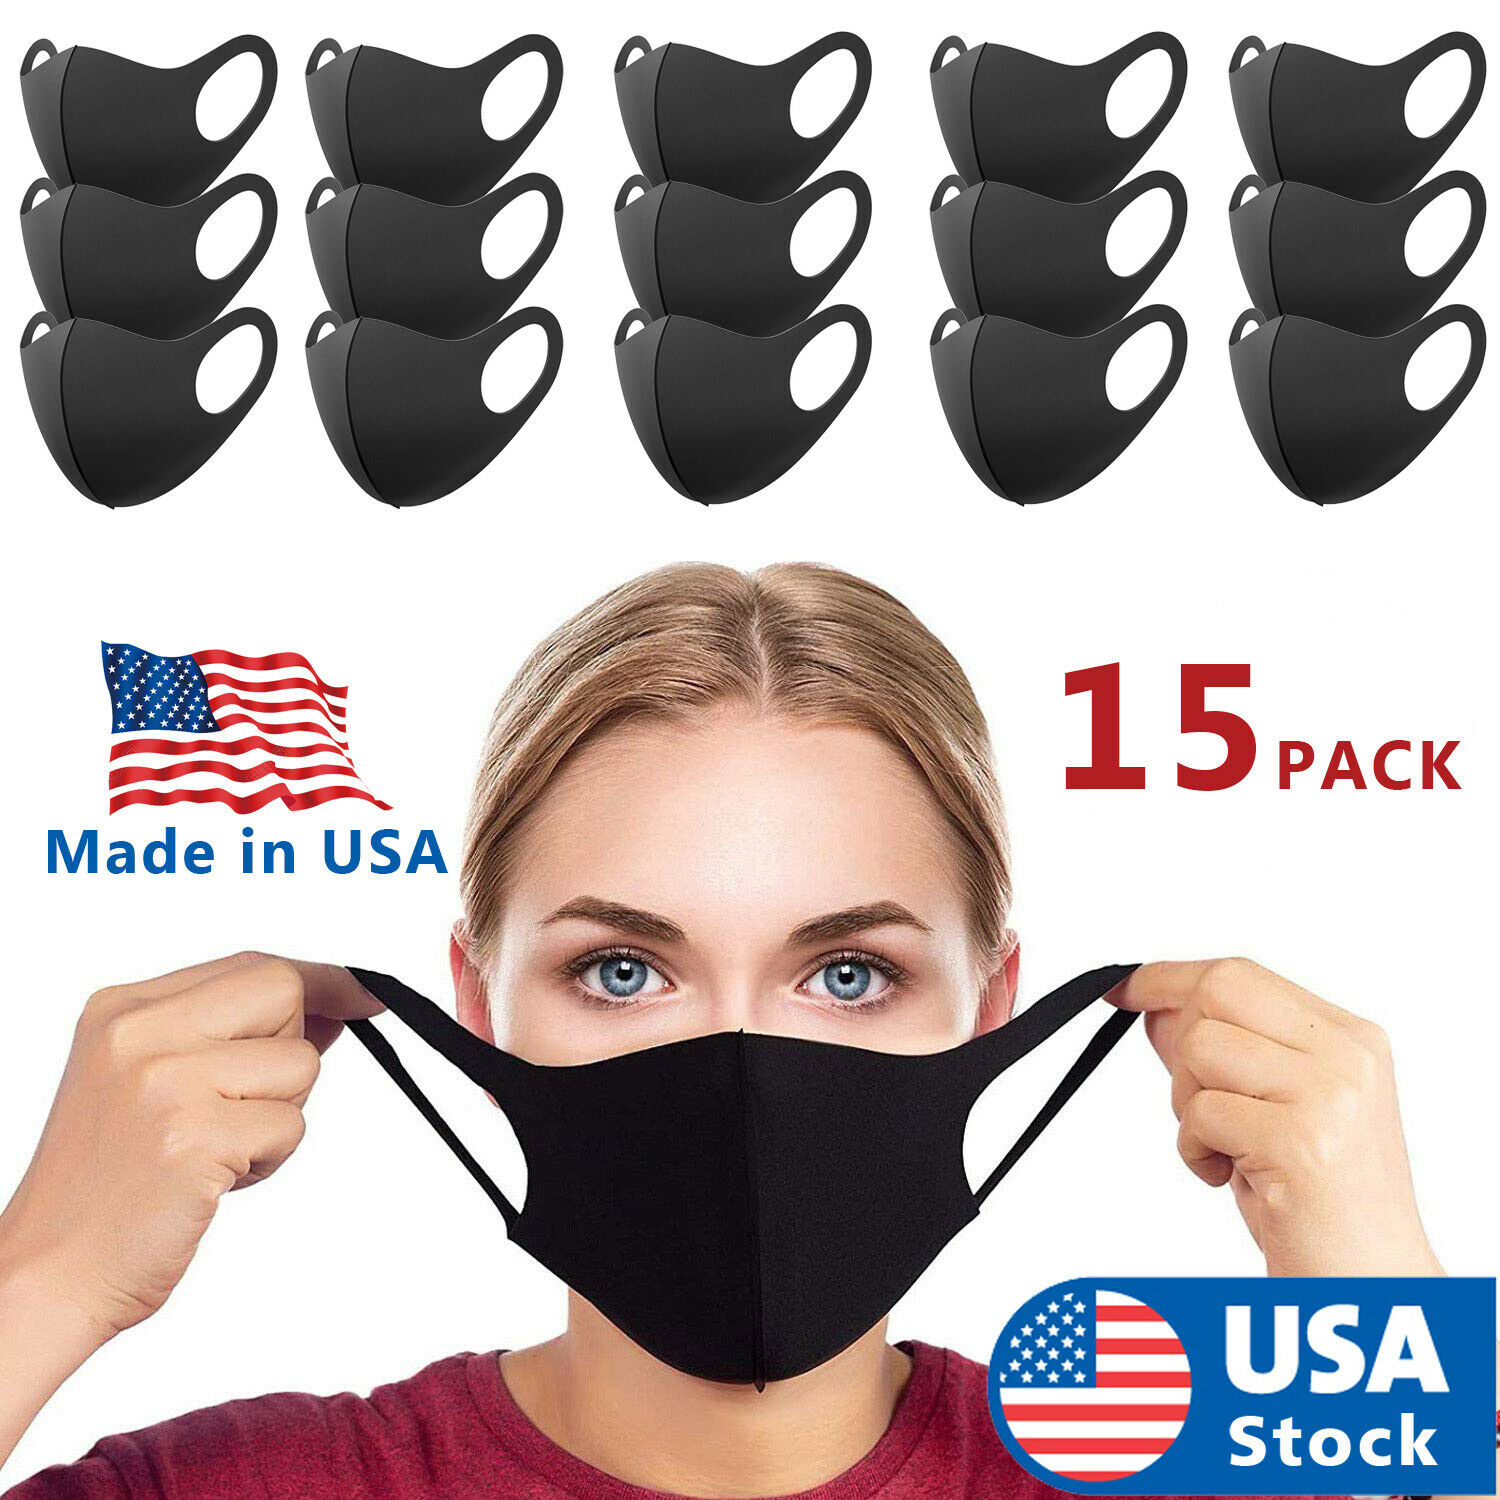 15-PACK Black Face Fashion Mask Washable Reusable Unisex Adult MASK Made IN USA Accessories